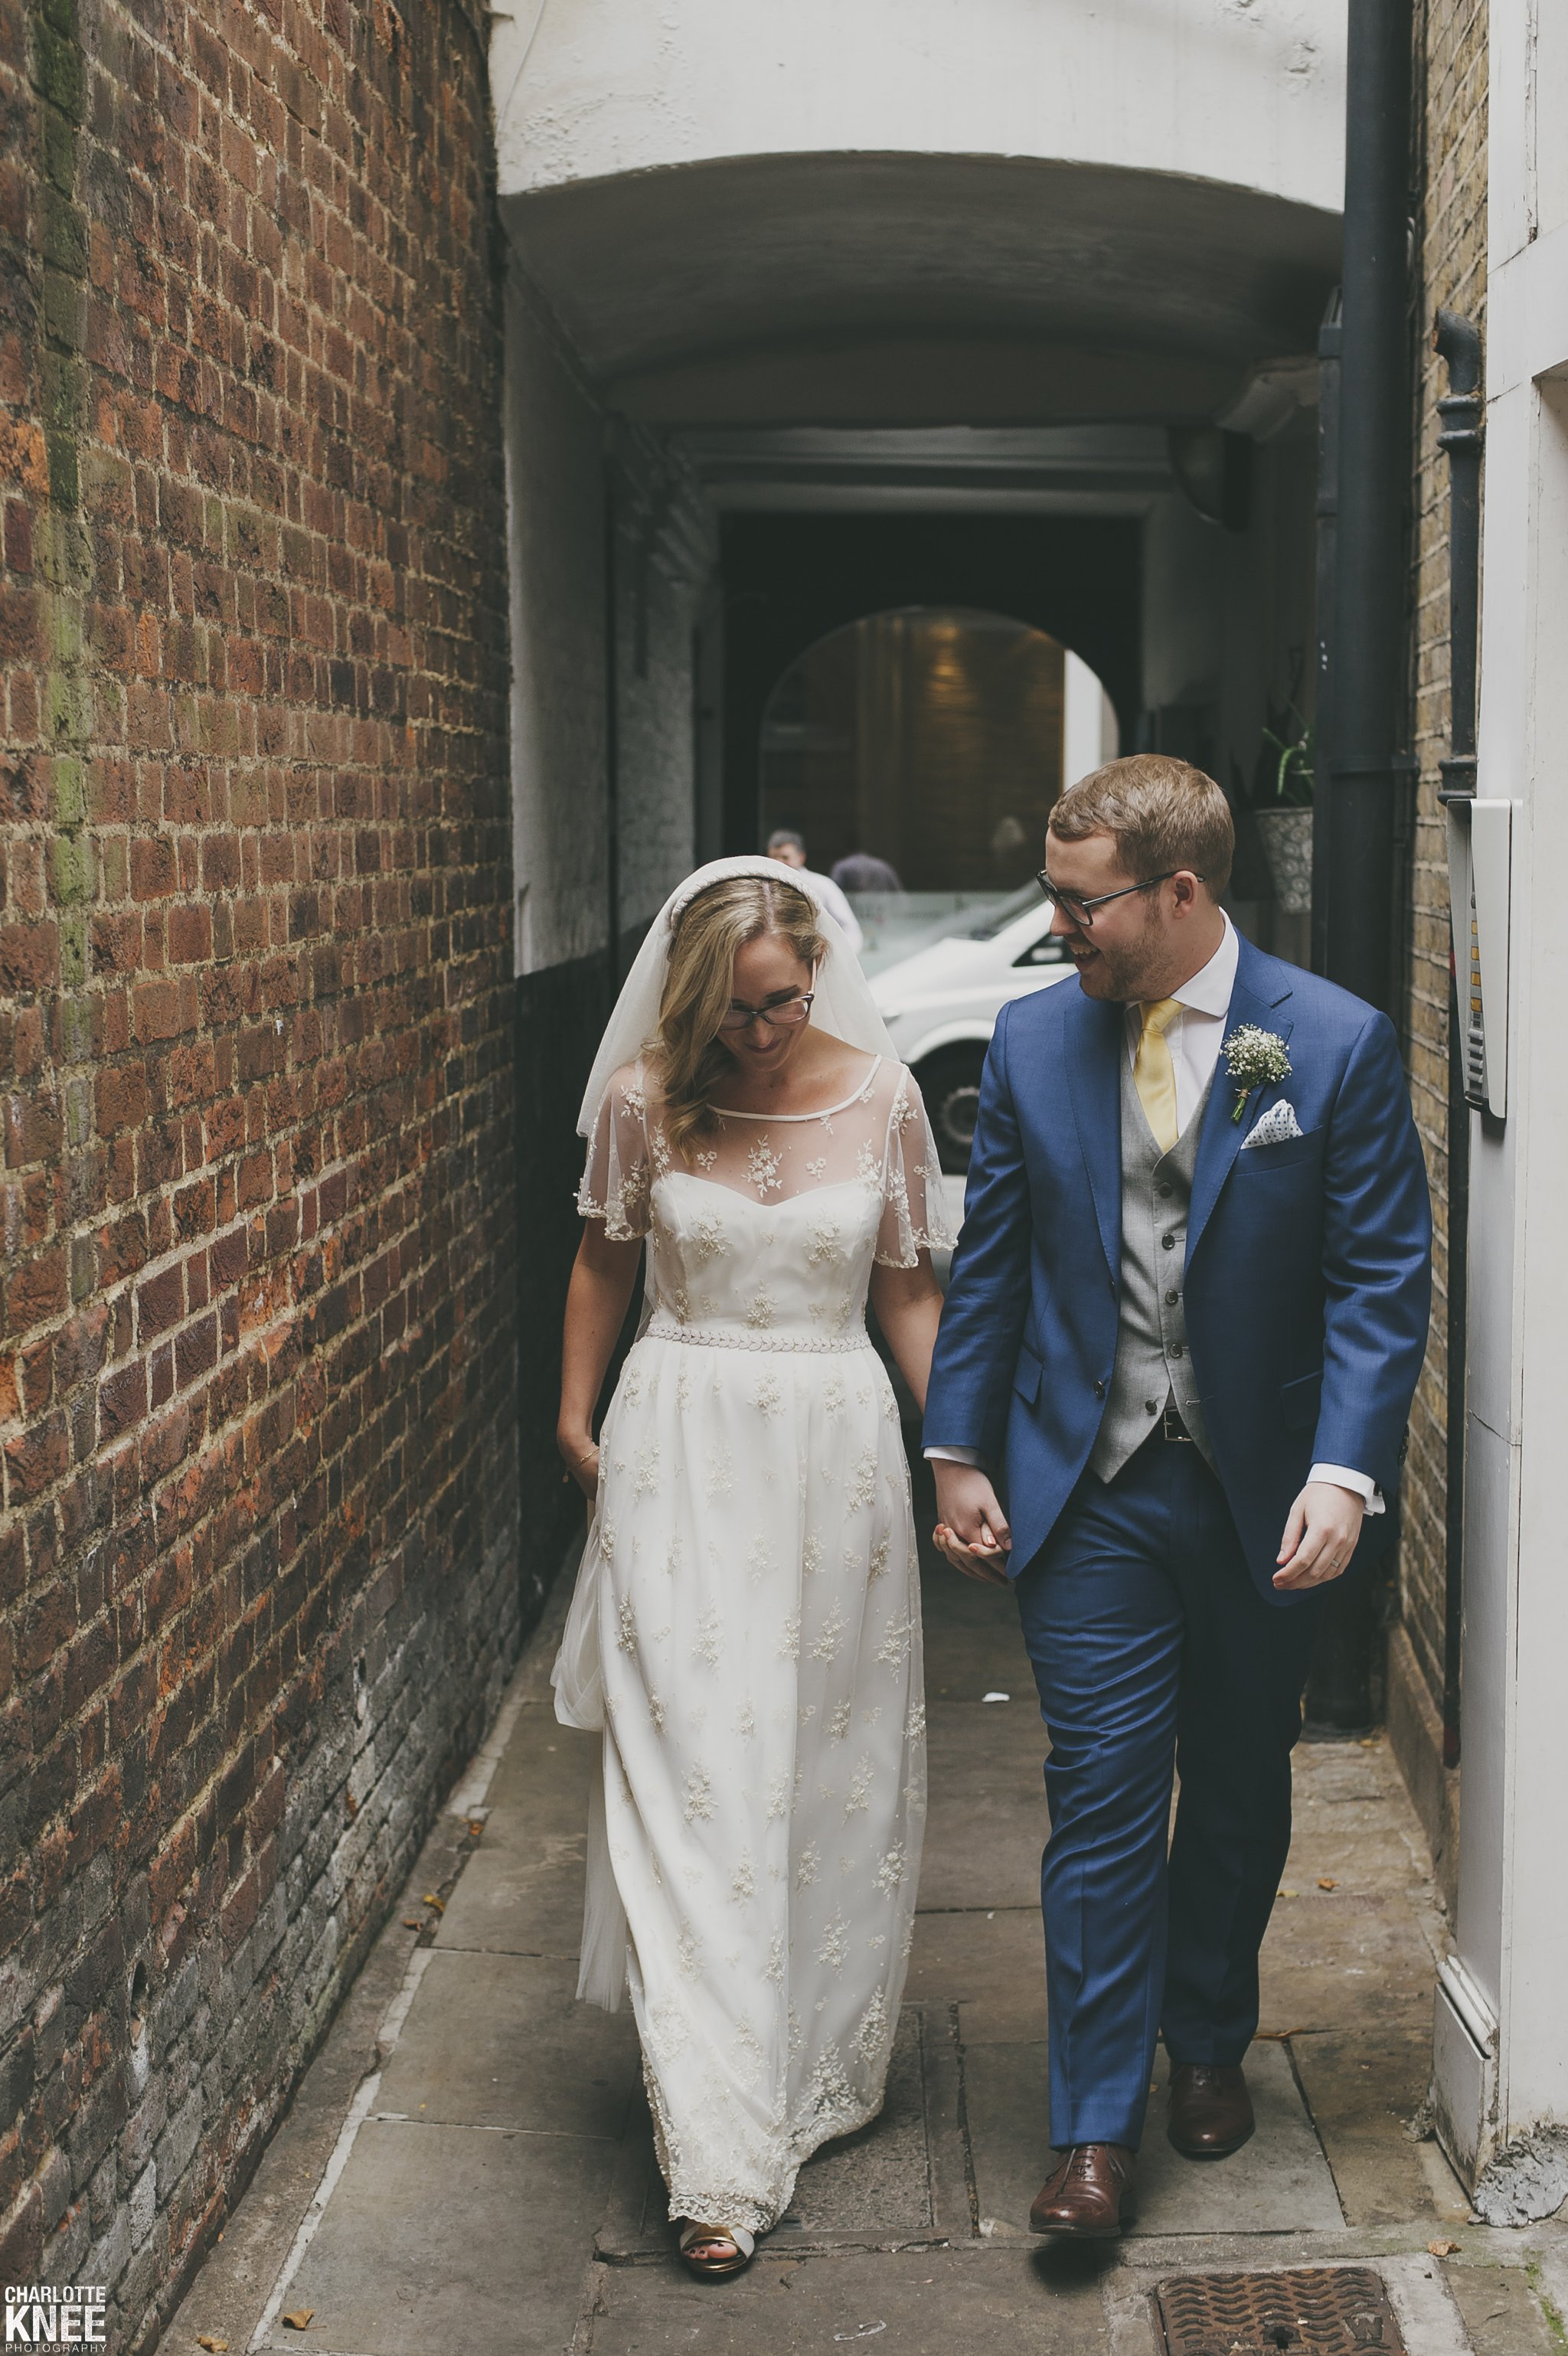 Saddlers Hall London Wedding Photography Copyright Charlotte Knee Photography_0105.jpg